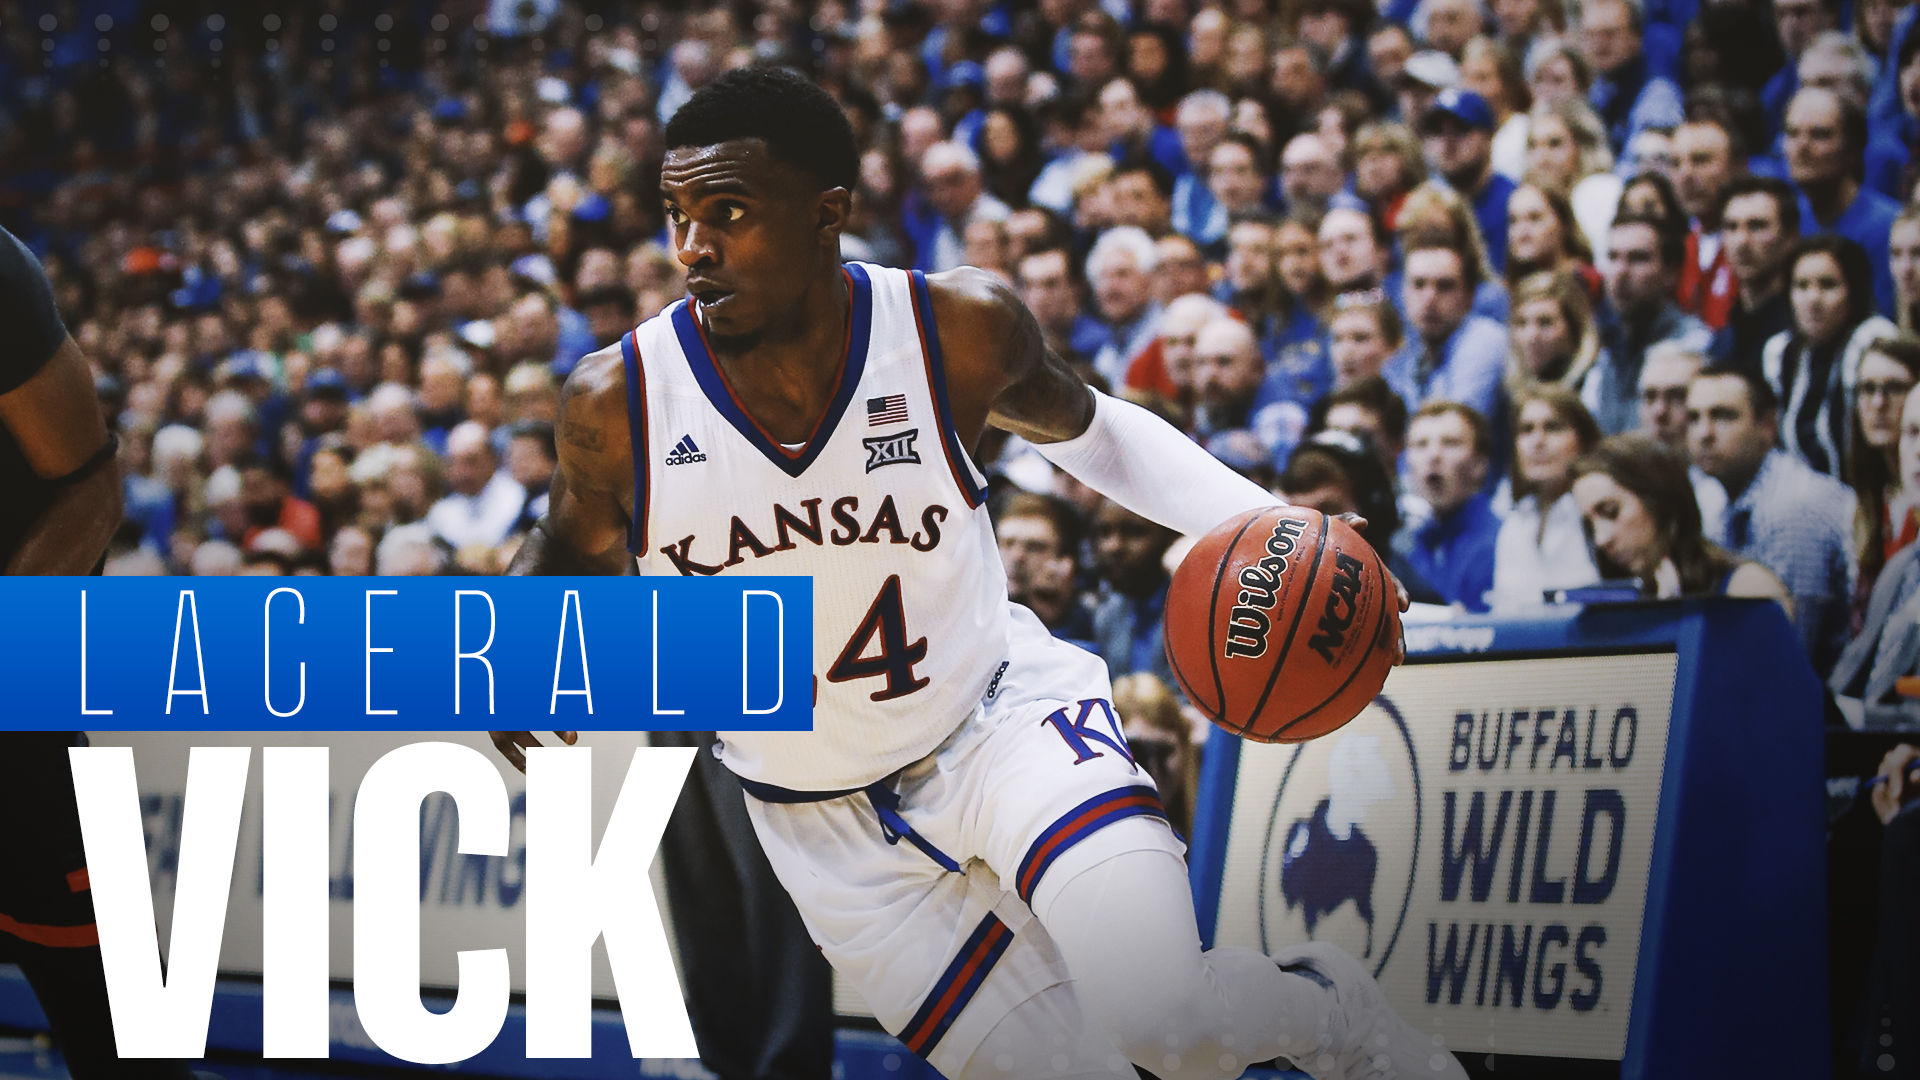 2019 NBA Draft Profile: Lagerald Vick, Kansas